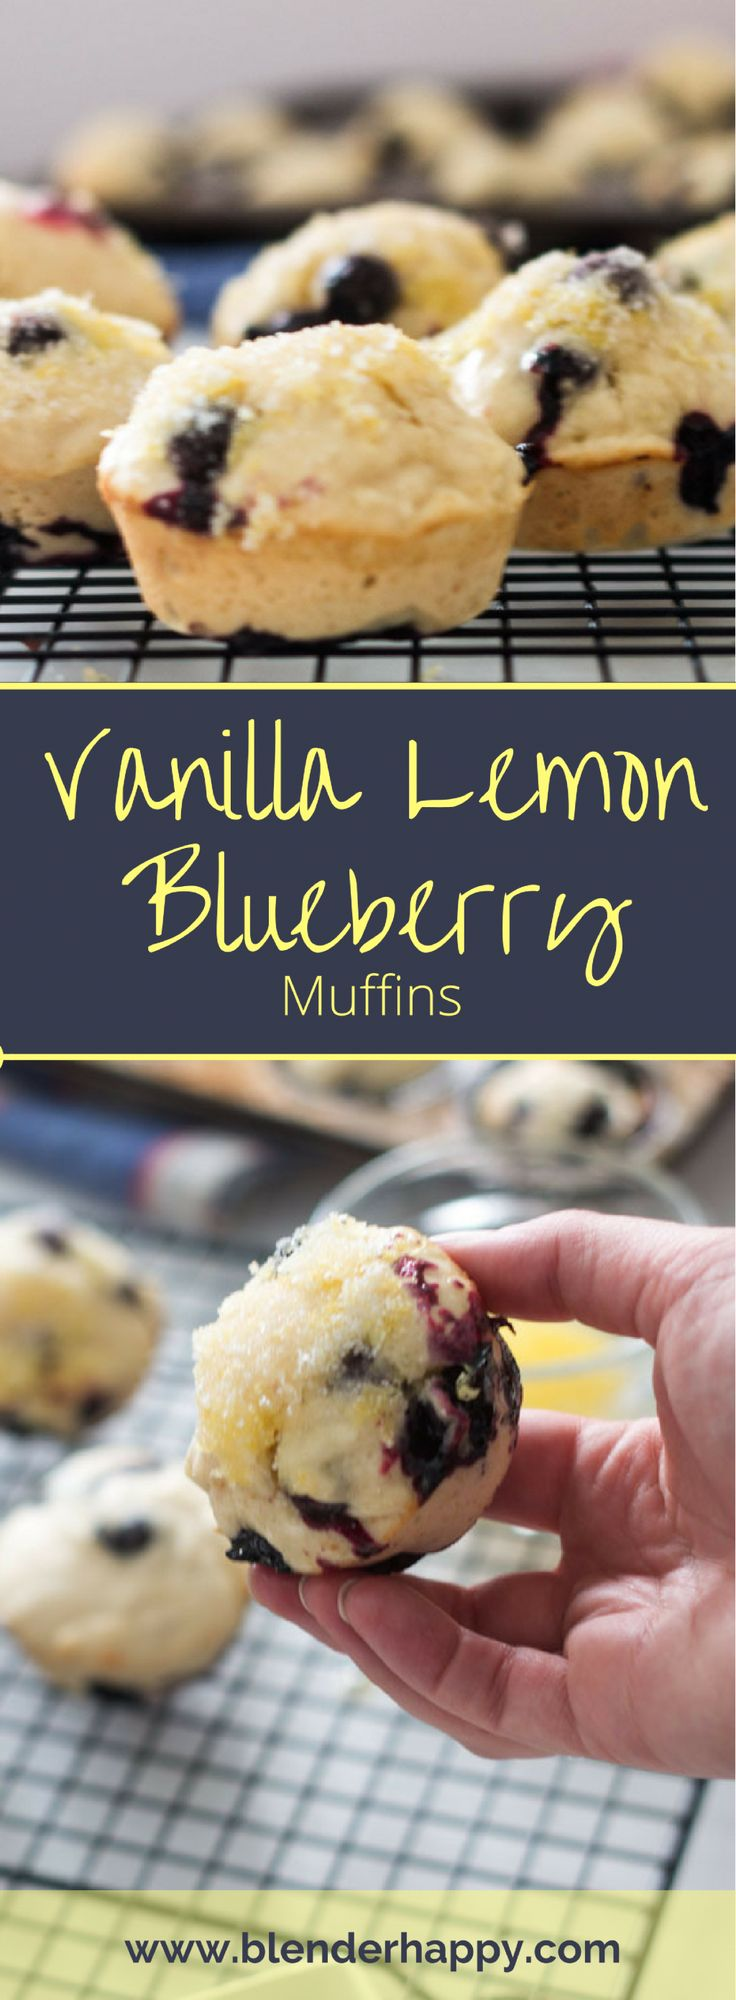 Easy, delicious Vanilla Lemon Blueberry muffins are the perfect addition to any brunch menu. The decadent lemon butter + lemon sugar topping ensures a subtle lemon flavour in every bite. via @blenderhappy